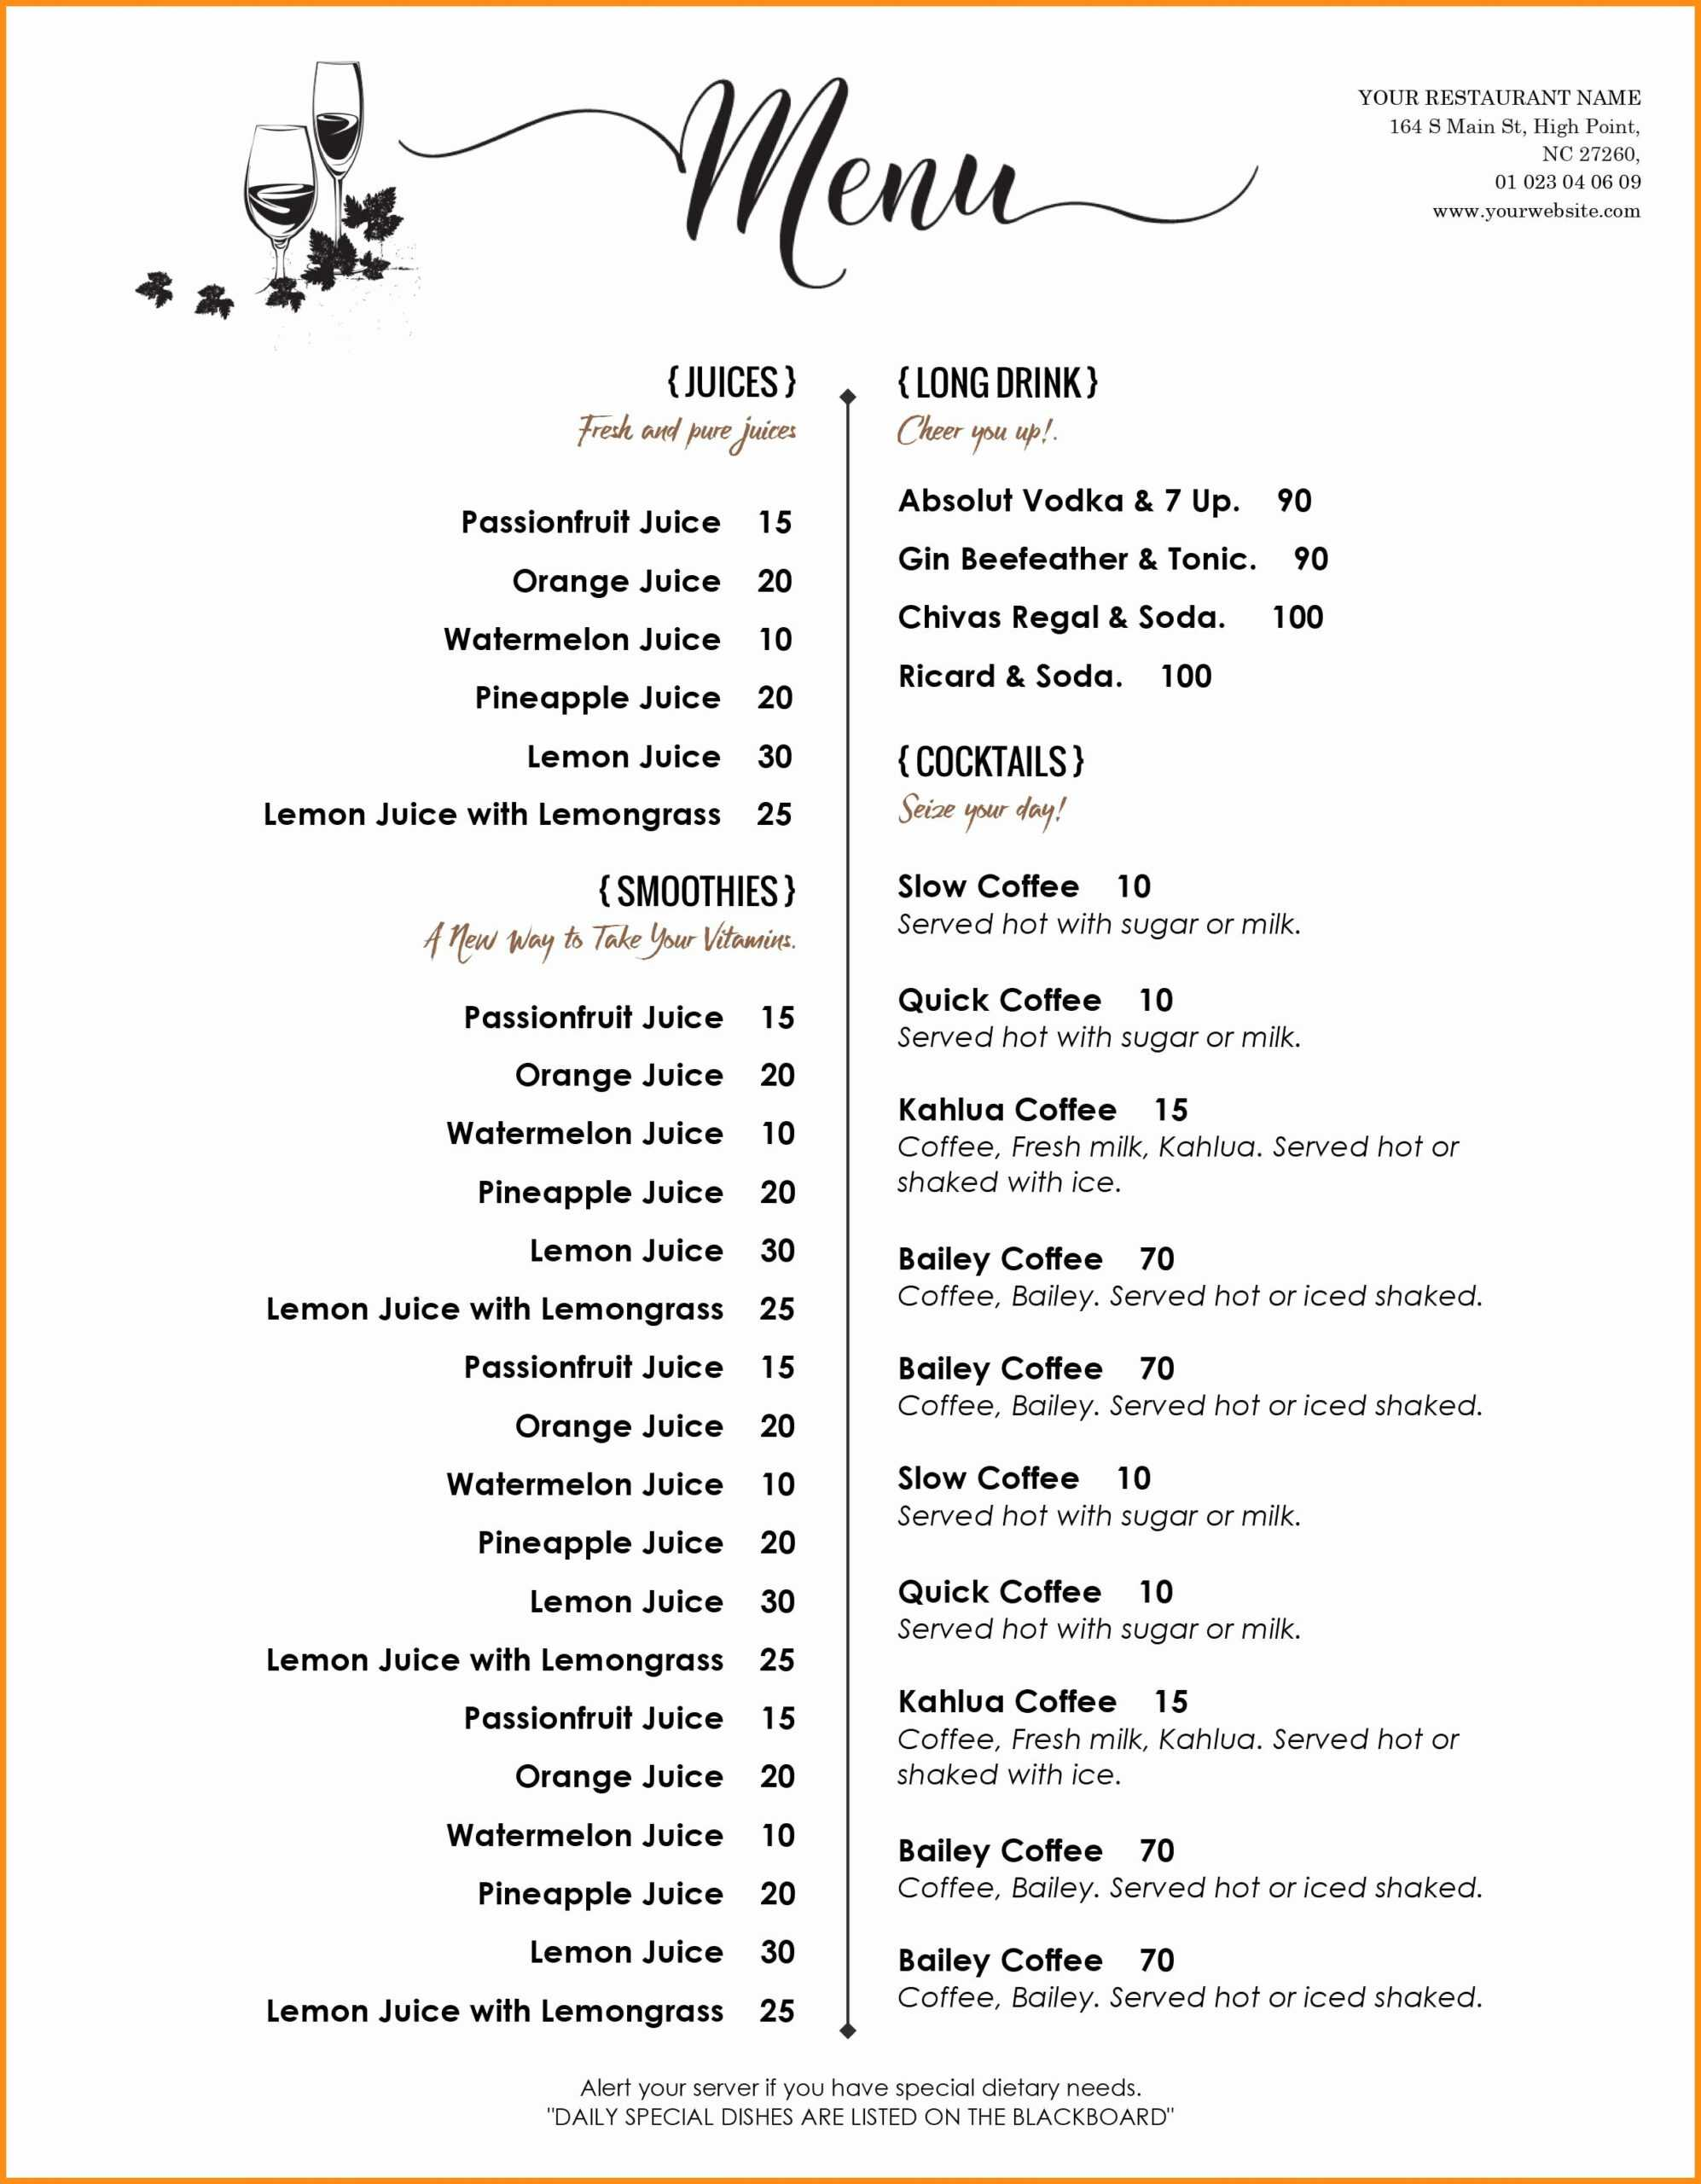 Menu Templates Word - Horizonconsulting.co Pertaining To Free Cafe Menu Templates For Word